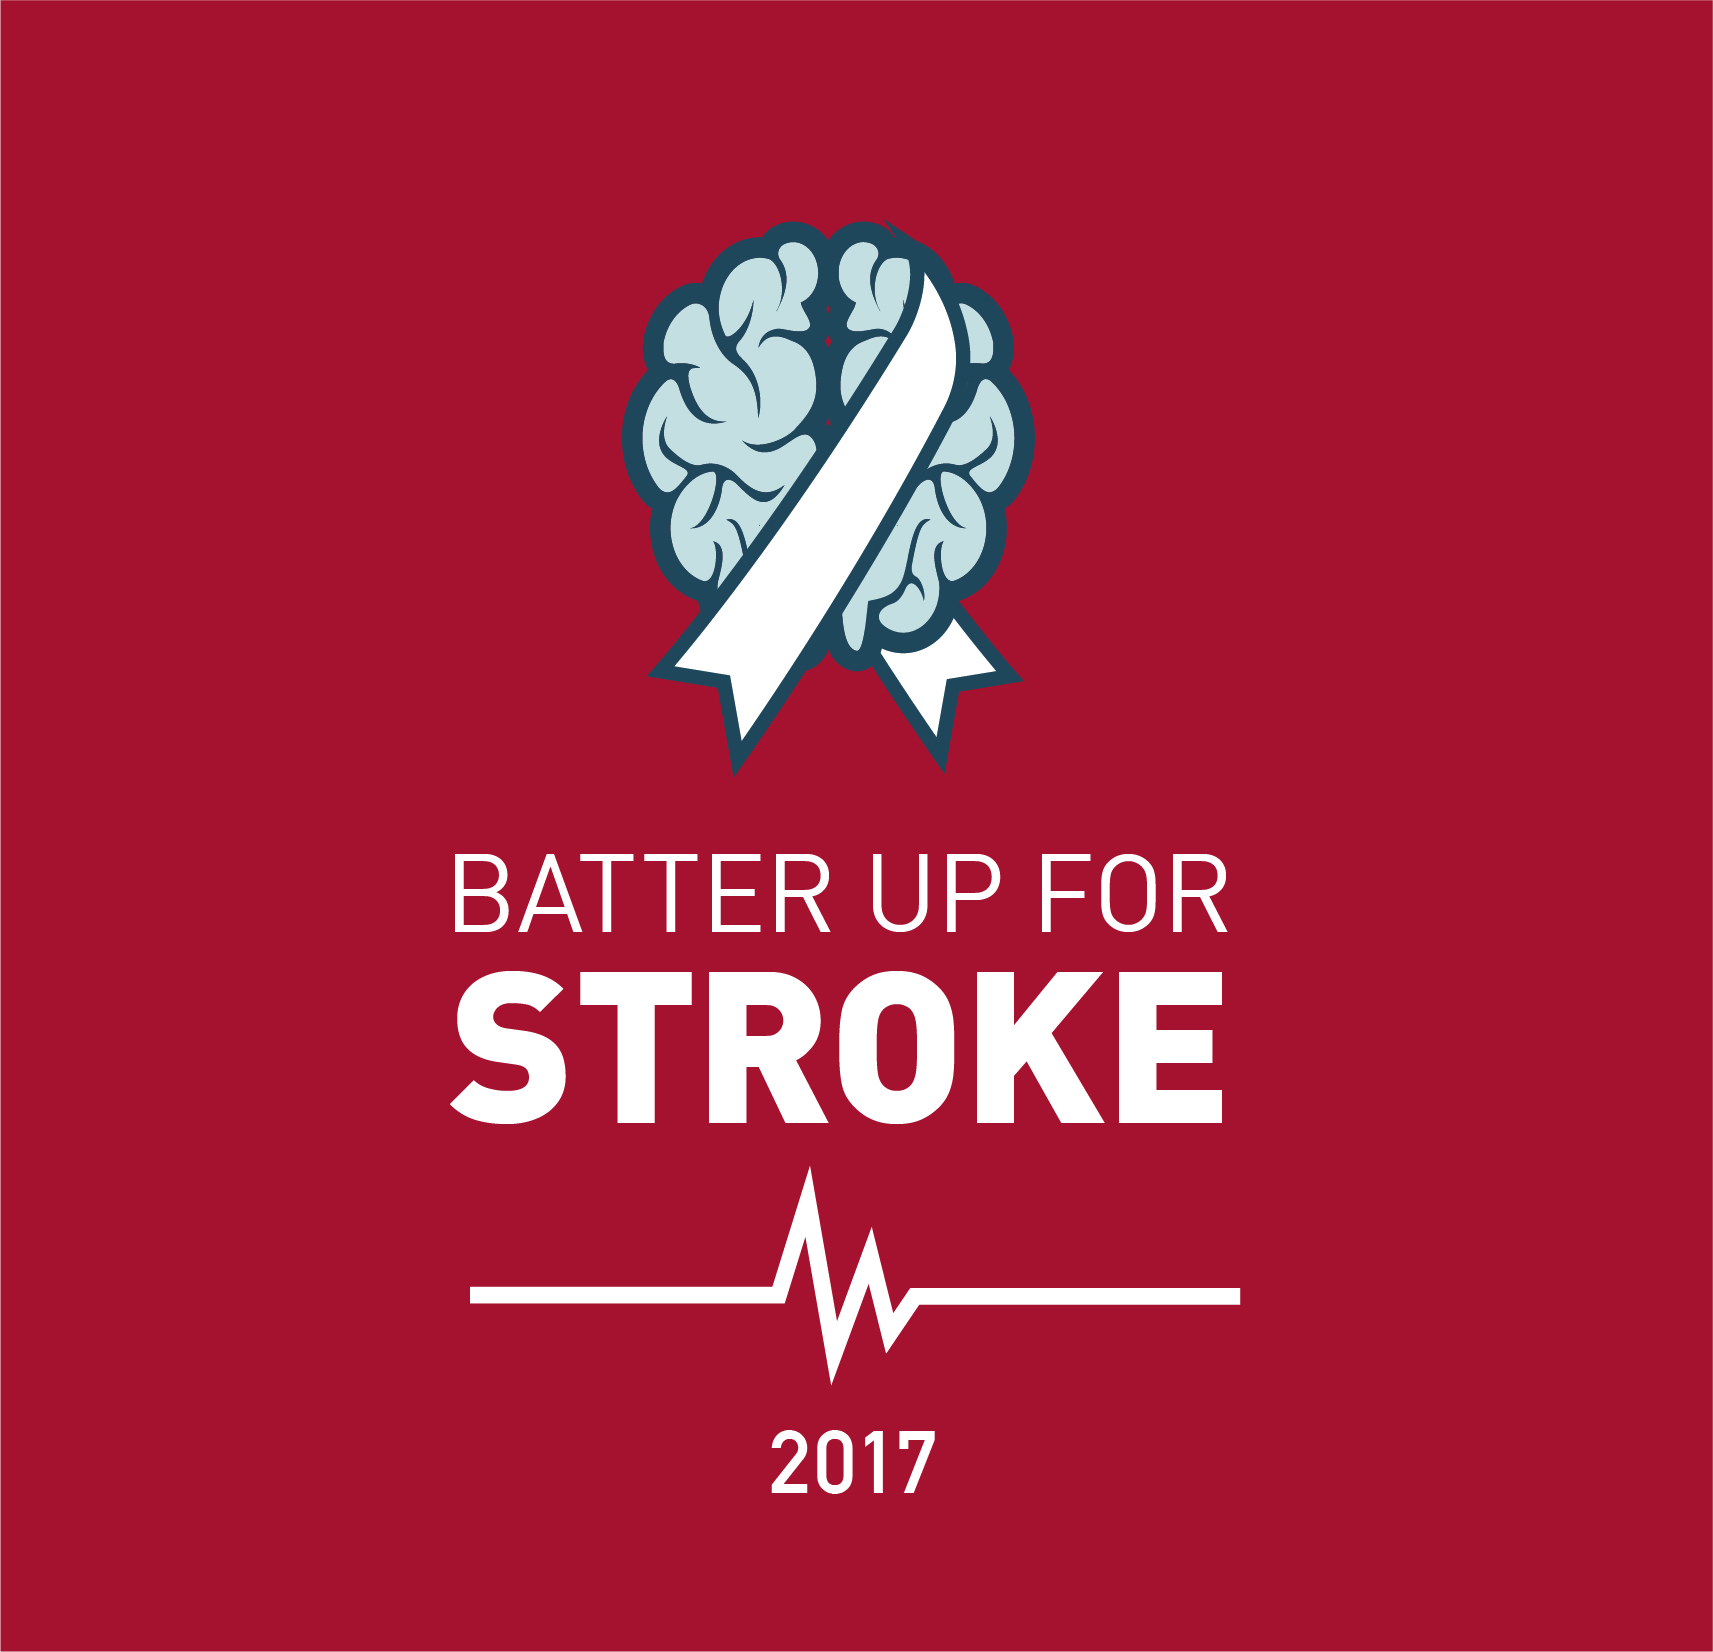 https://www.joeniekrofoundation.com/ways-to-give/batter-up-for-stroke/attachment/batter-up-for-stroke_logo_final-03/